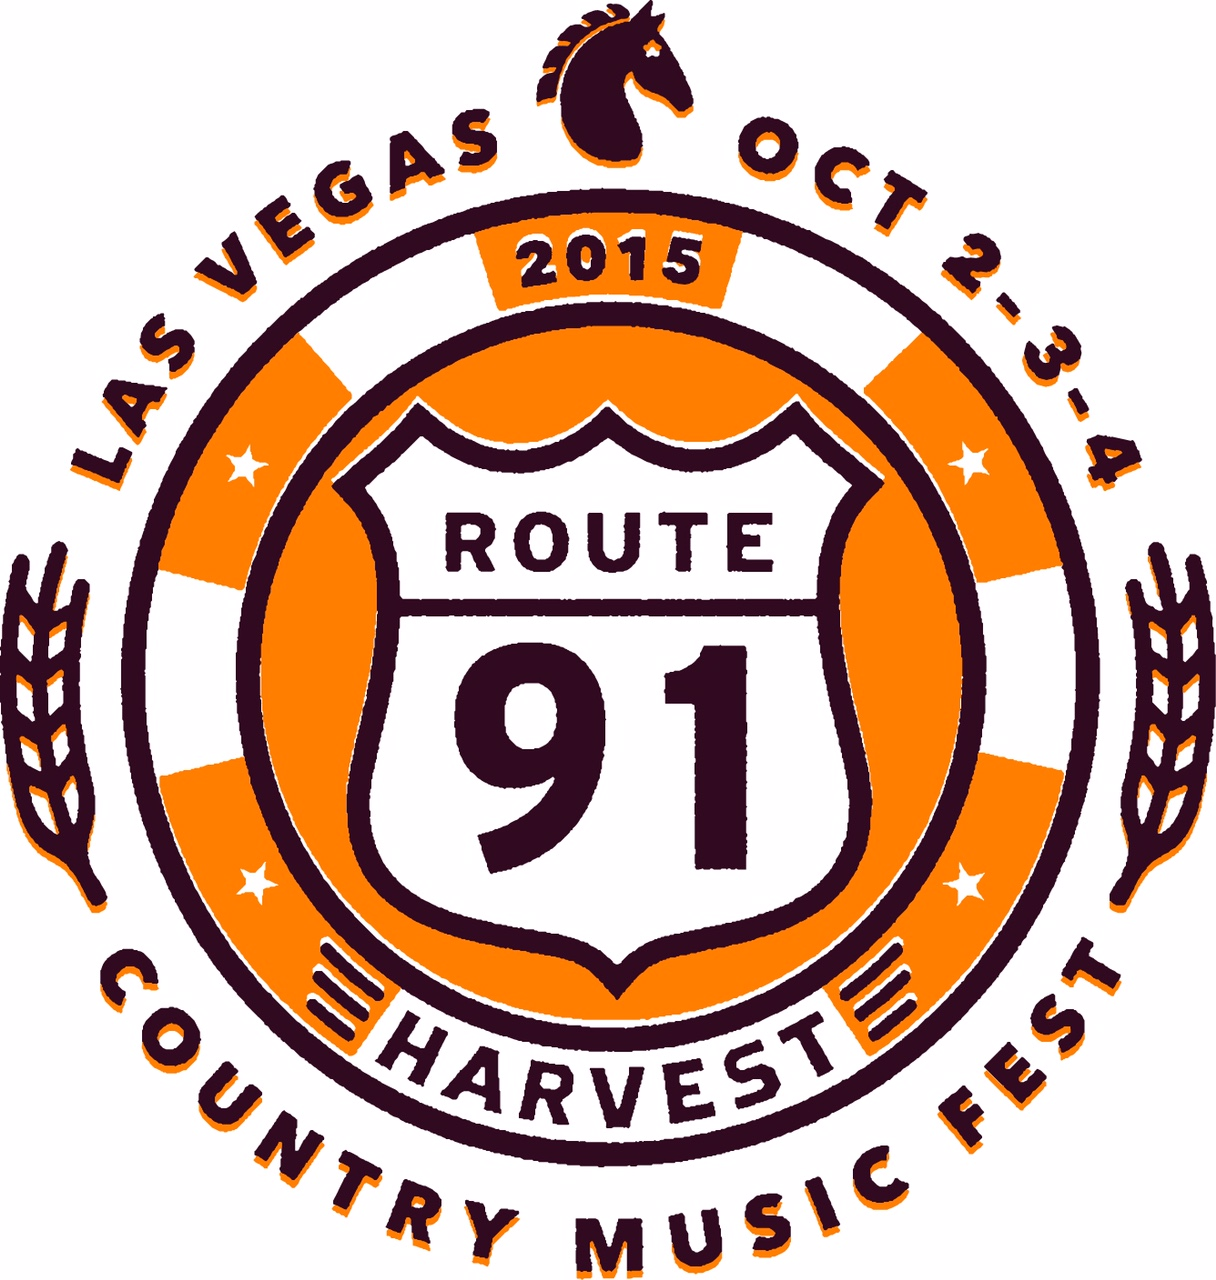 Route 91 Harvest Teams Up With Siriusxm To Be First Country Music